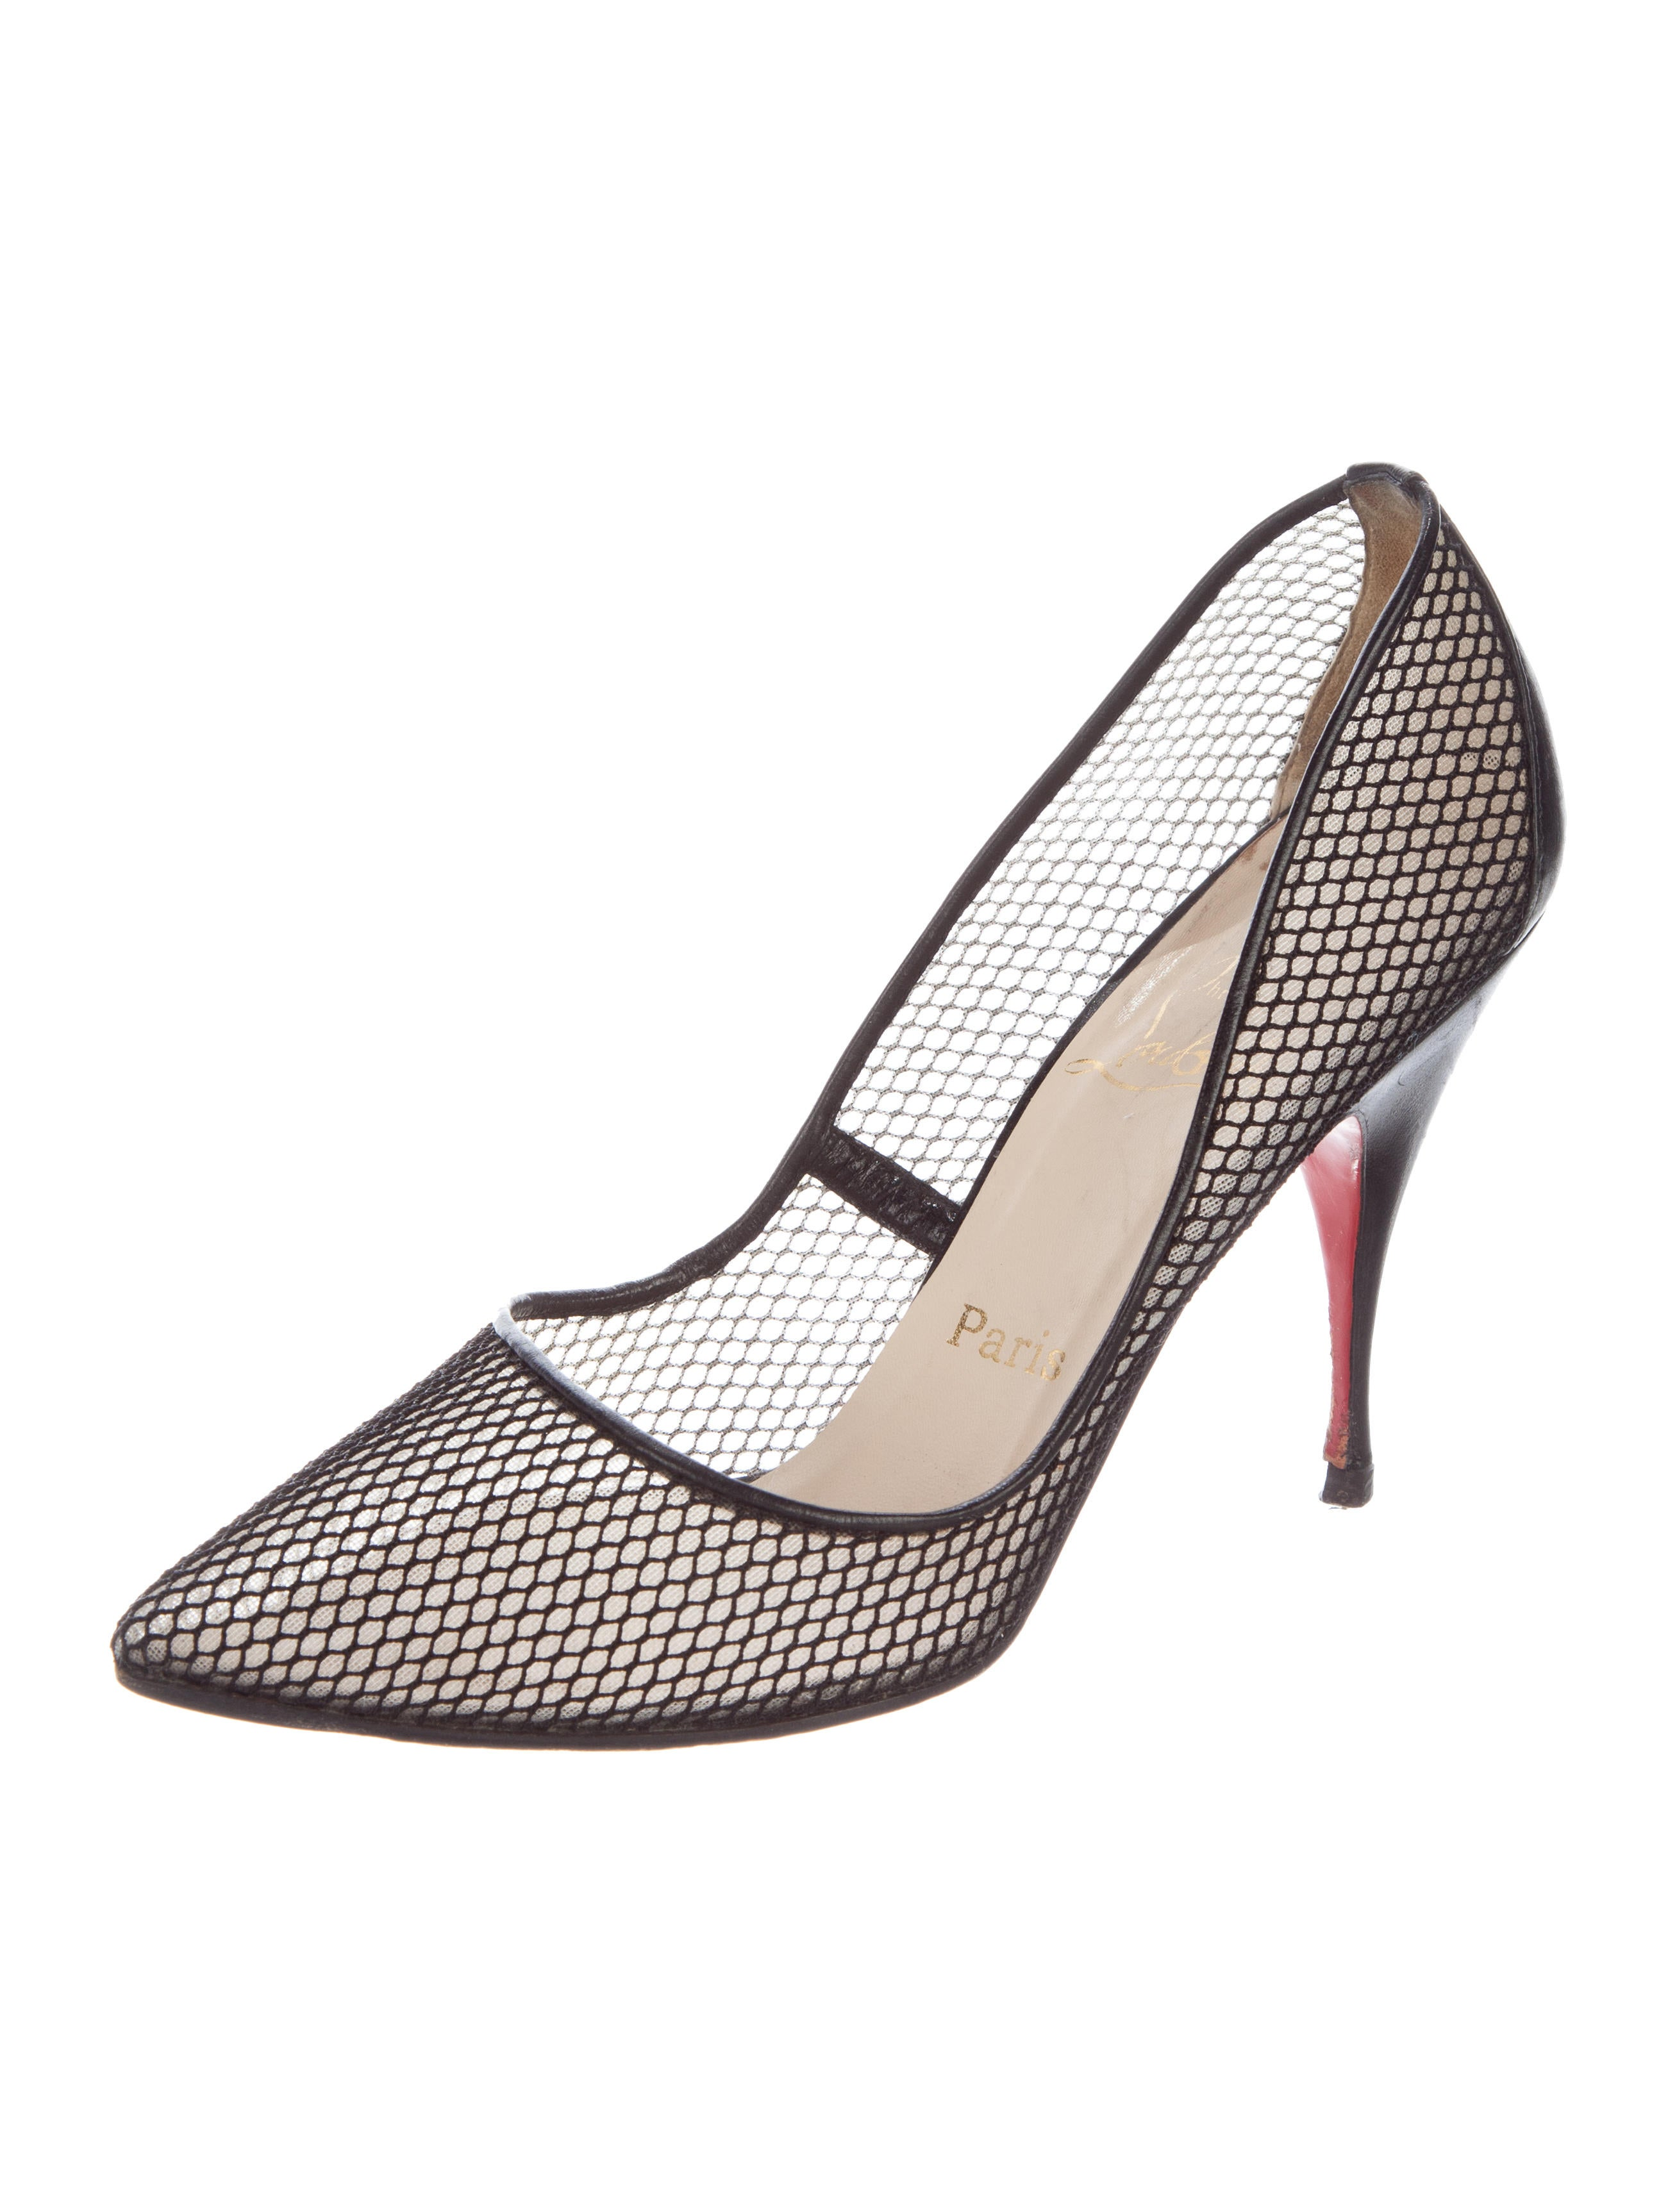 f6768cec1af7 White Studded Louboutin Shoes Yellow Selfridges Uk Sign In